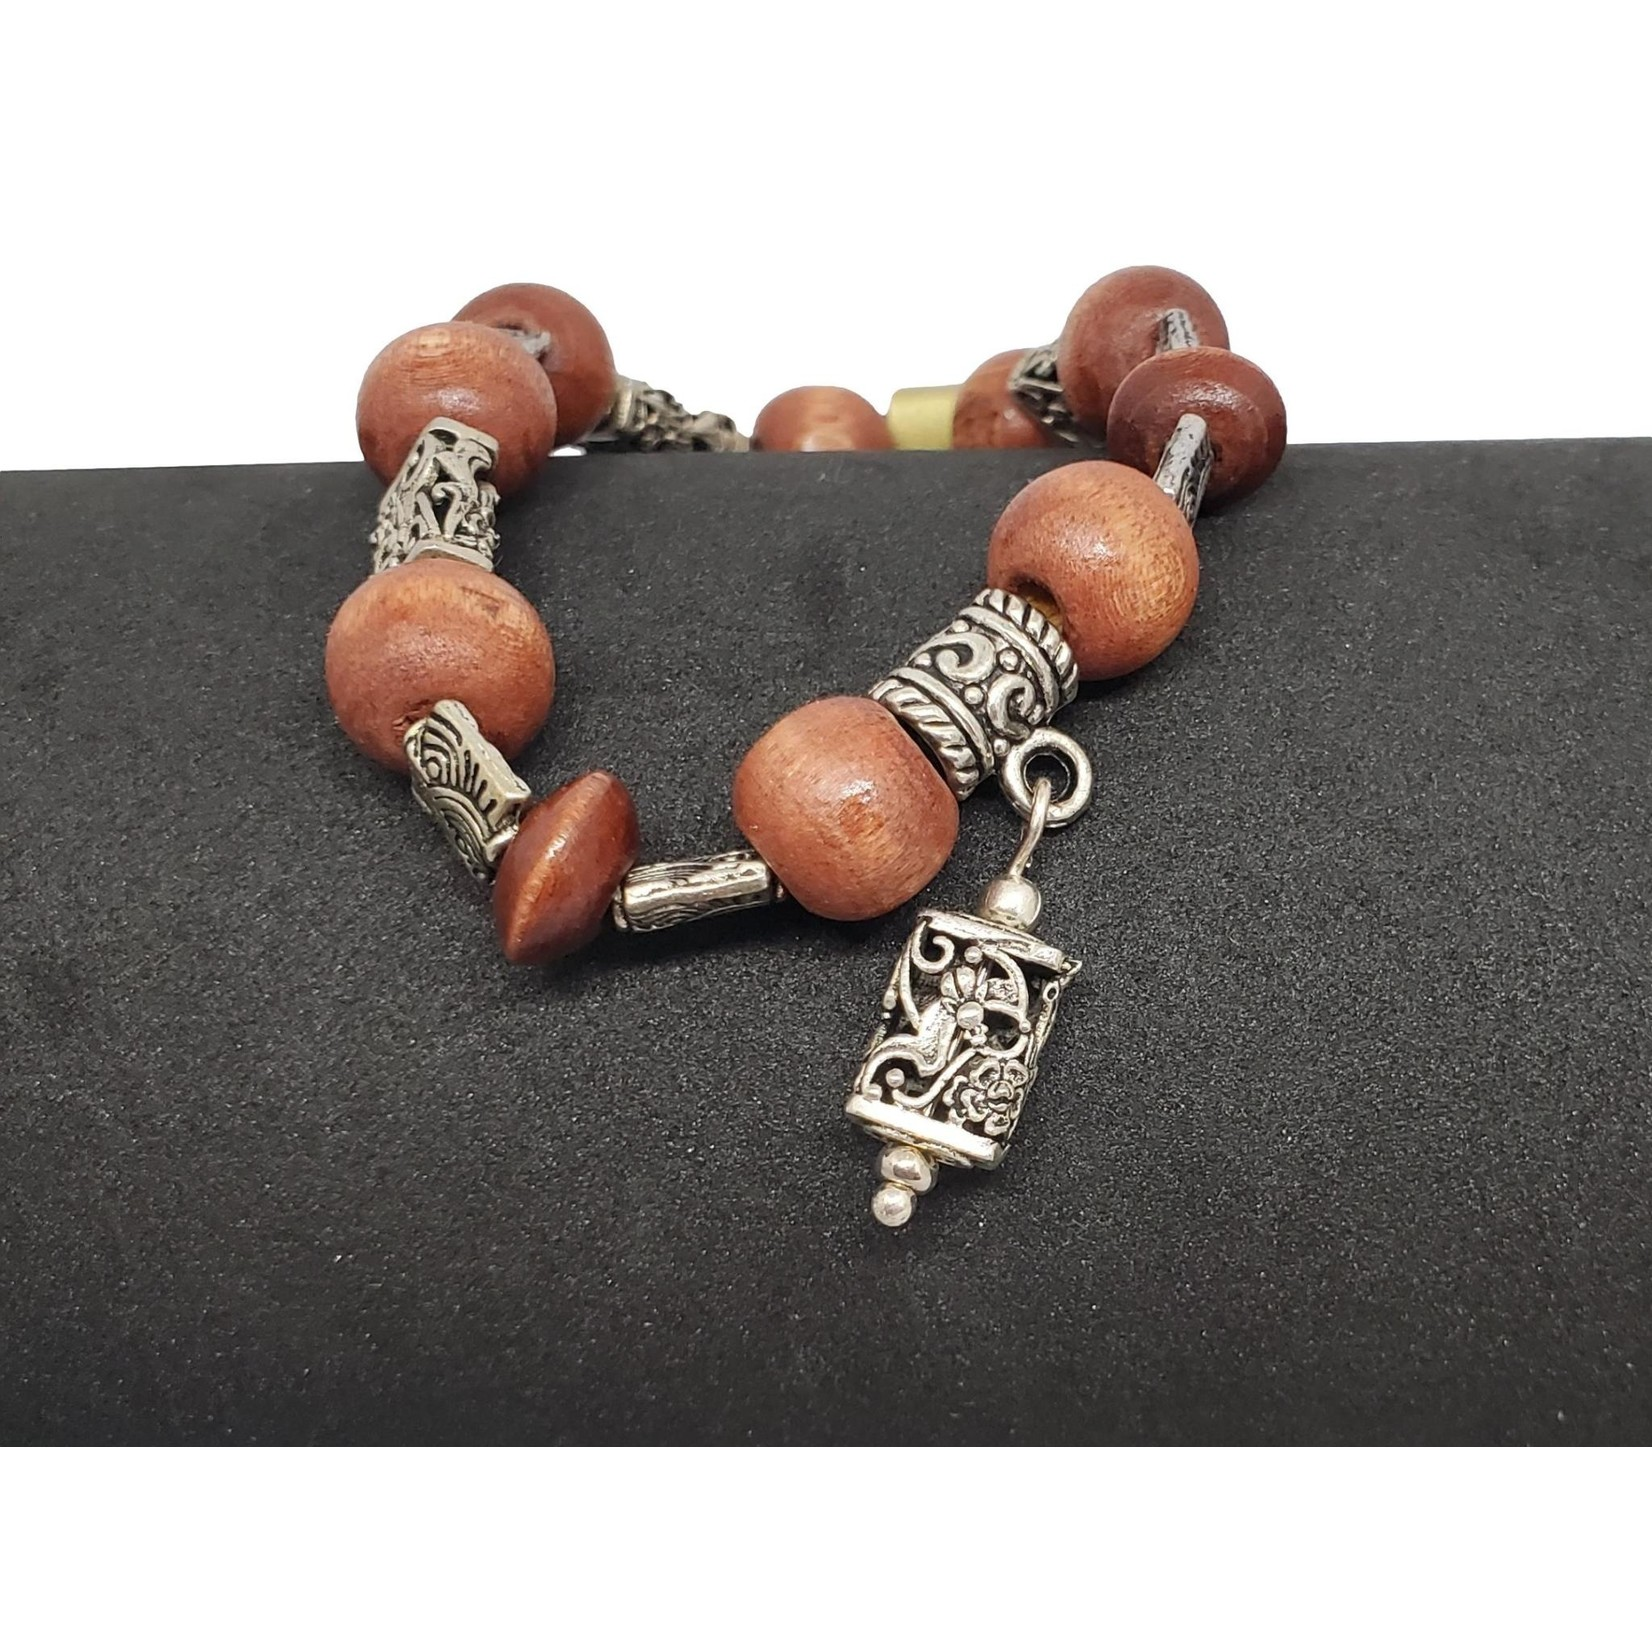 Jewellery by Deborah Young-Groves Wood Beads with Silver Tibetan Beads Bracelet